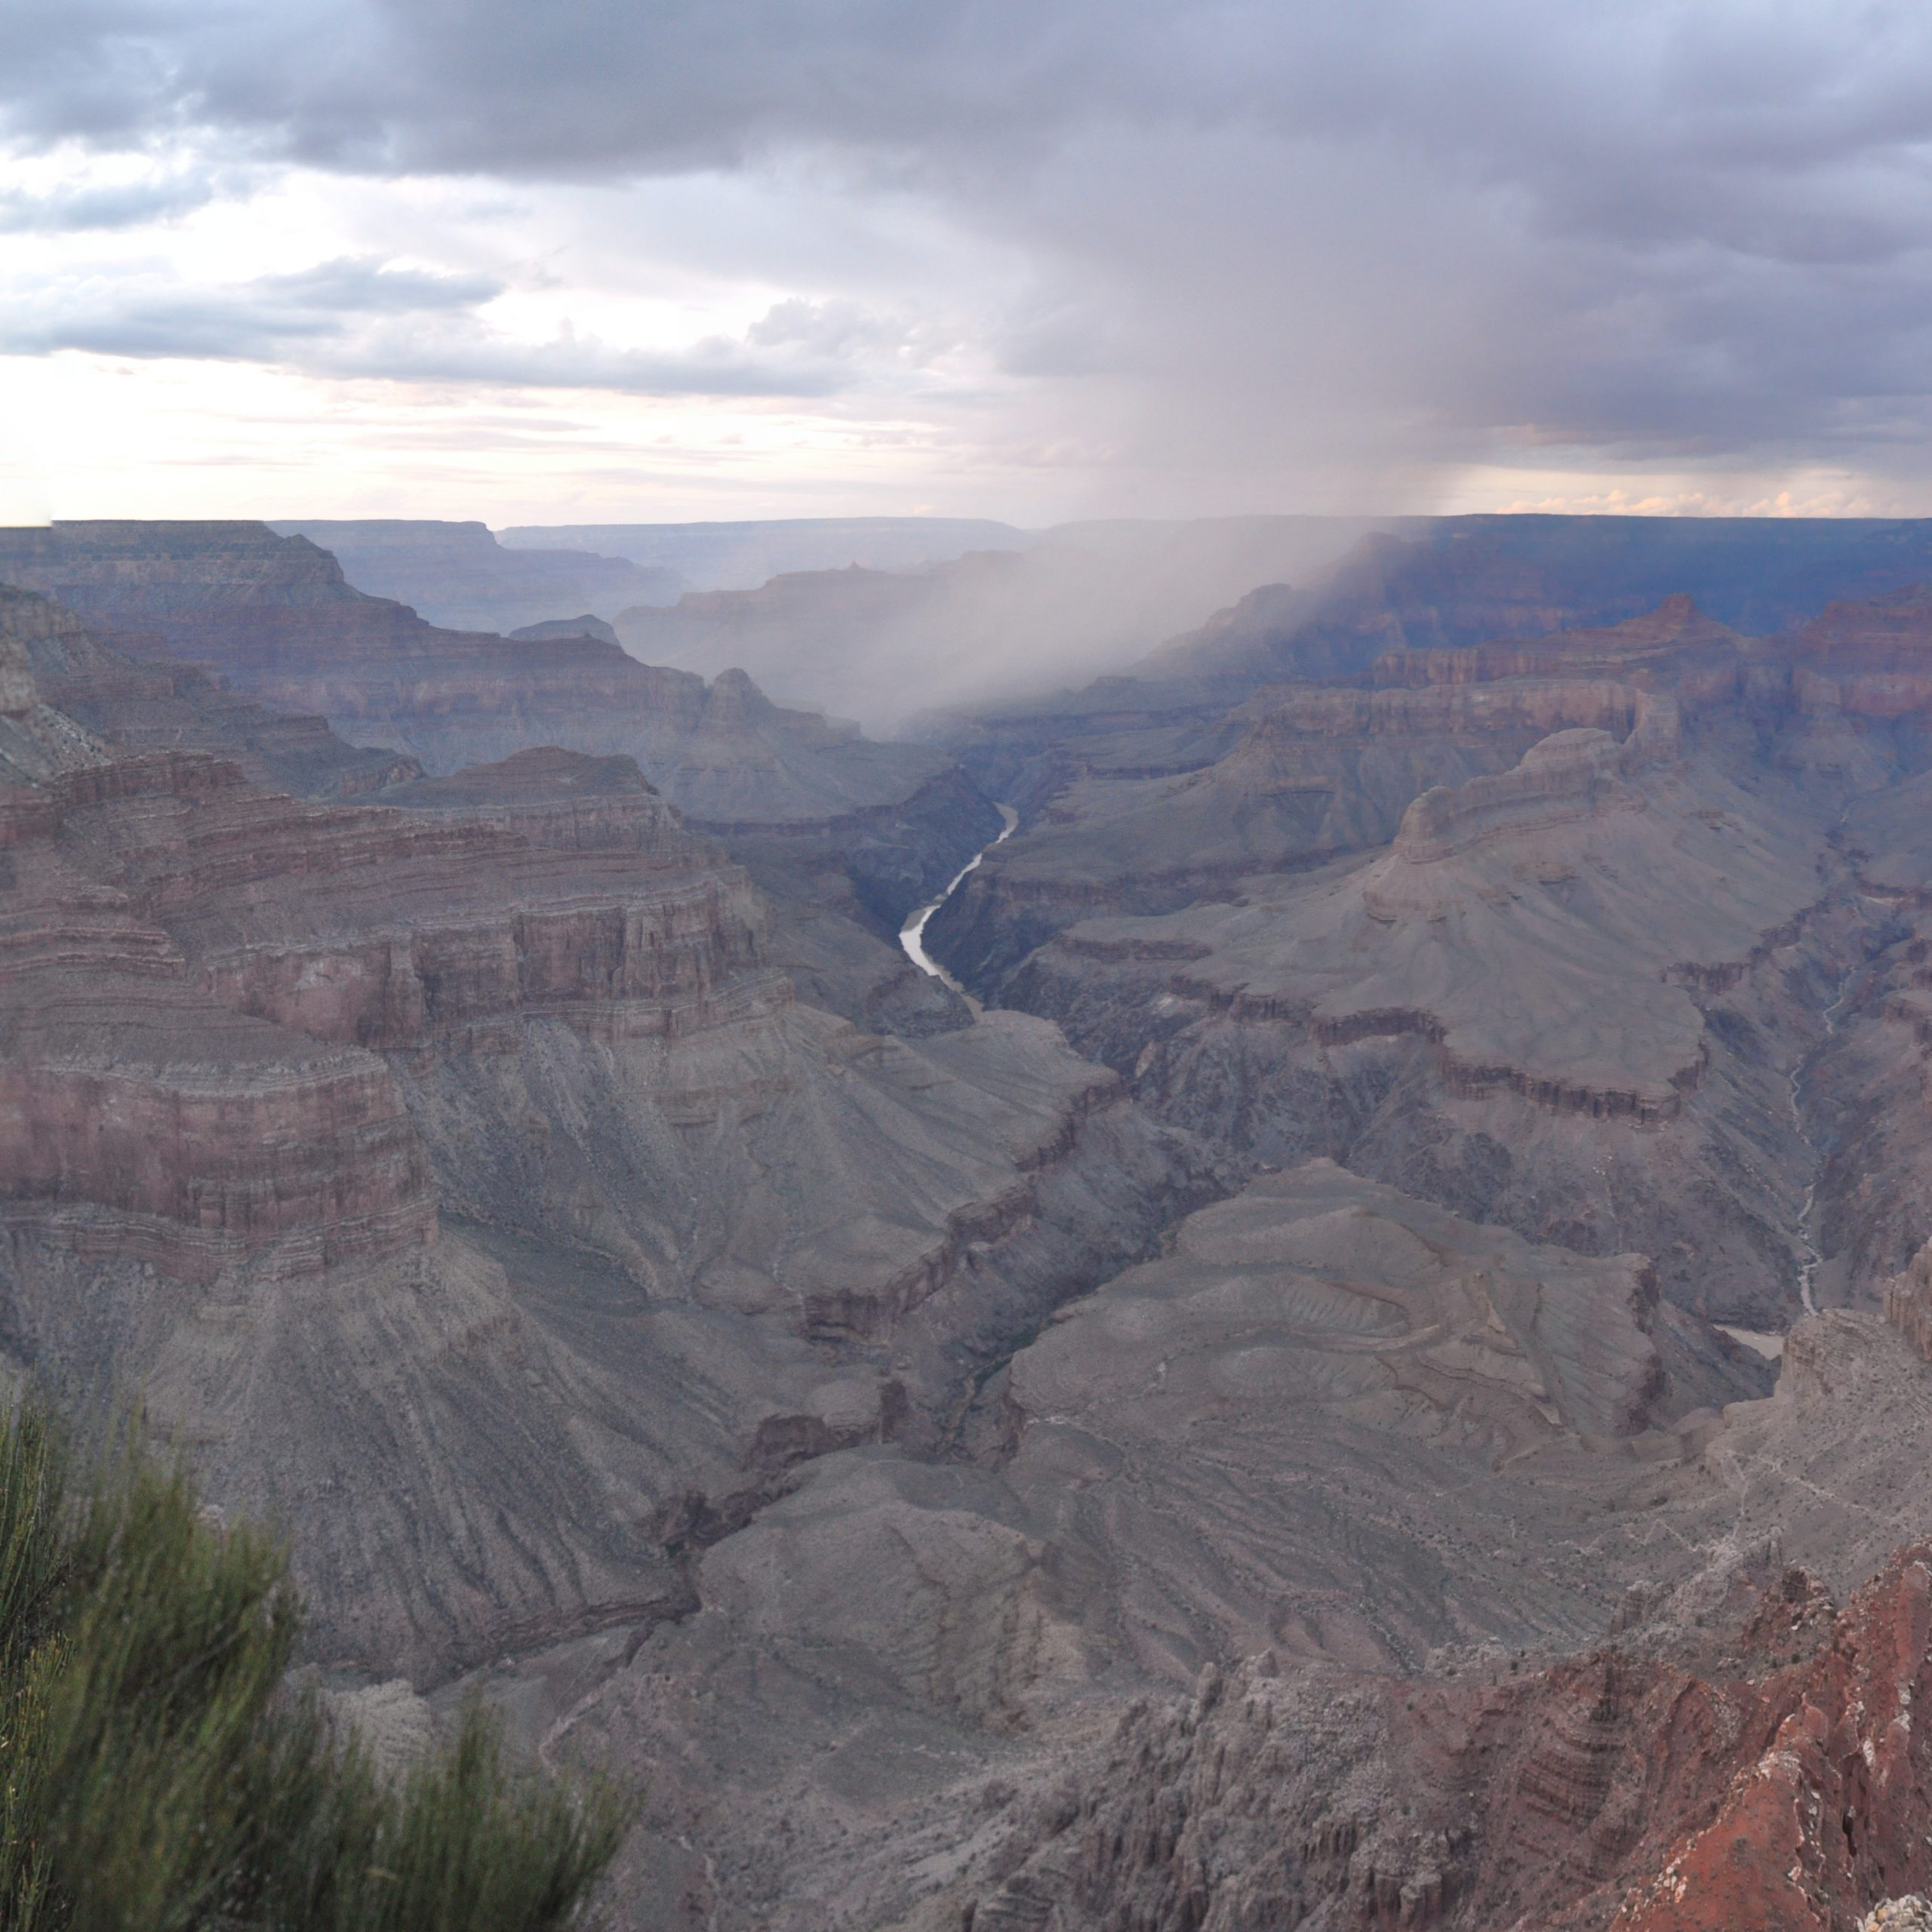 Rain over the Grand Canyon, seen looking north from Mohave Point on the Rim Trail, with the Colorado River at the bottom of the canyon.